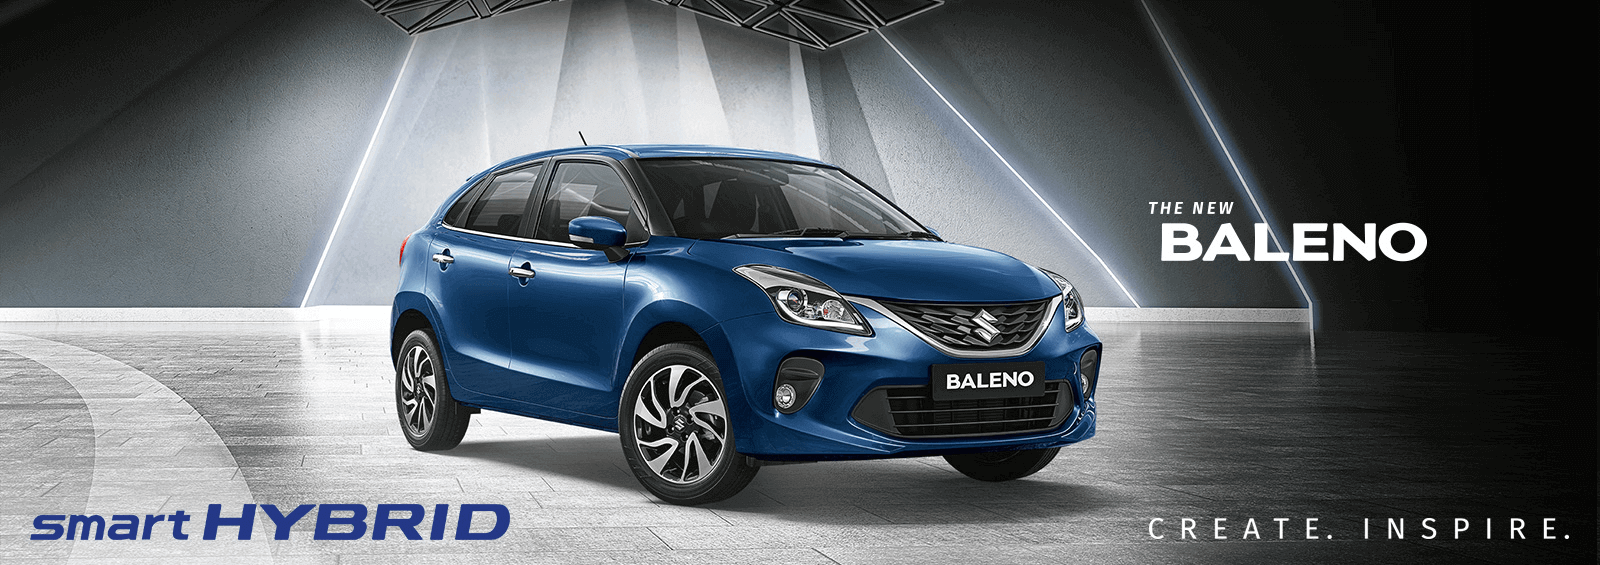 Baleno-Desktop-Banner Prem Motors Pvt. Ltd. IDC Sector 14, Gurgaon